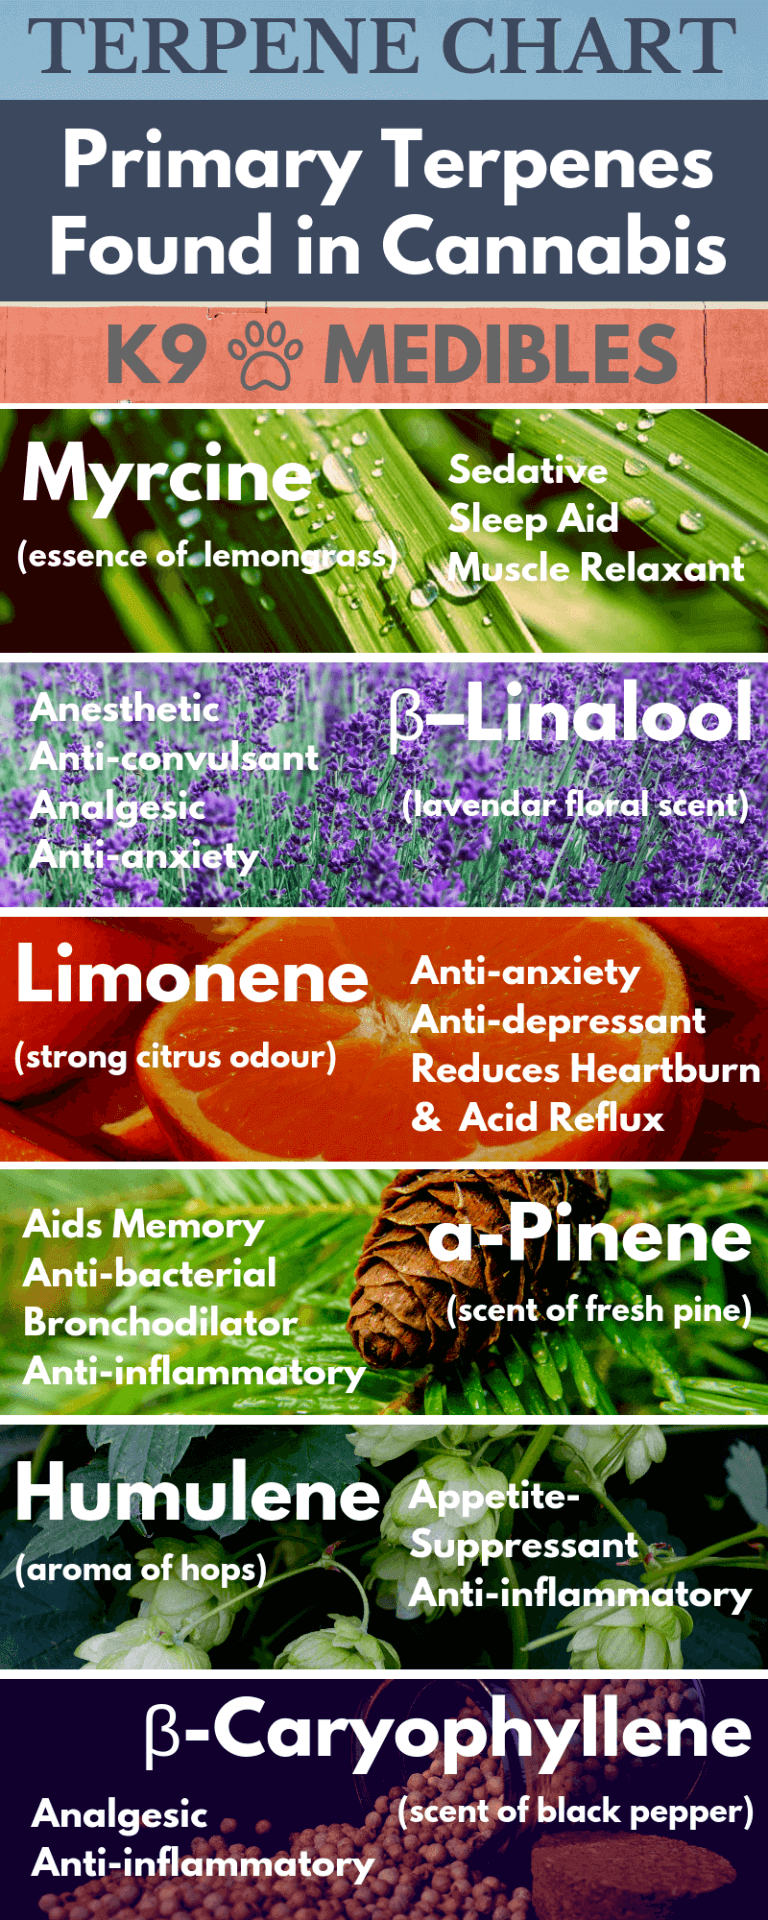 A Cannabis Terpene Chart showing the primary terpenes found in a cannabis plant